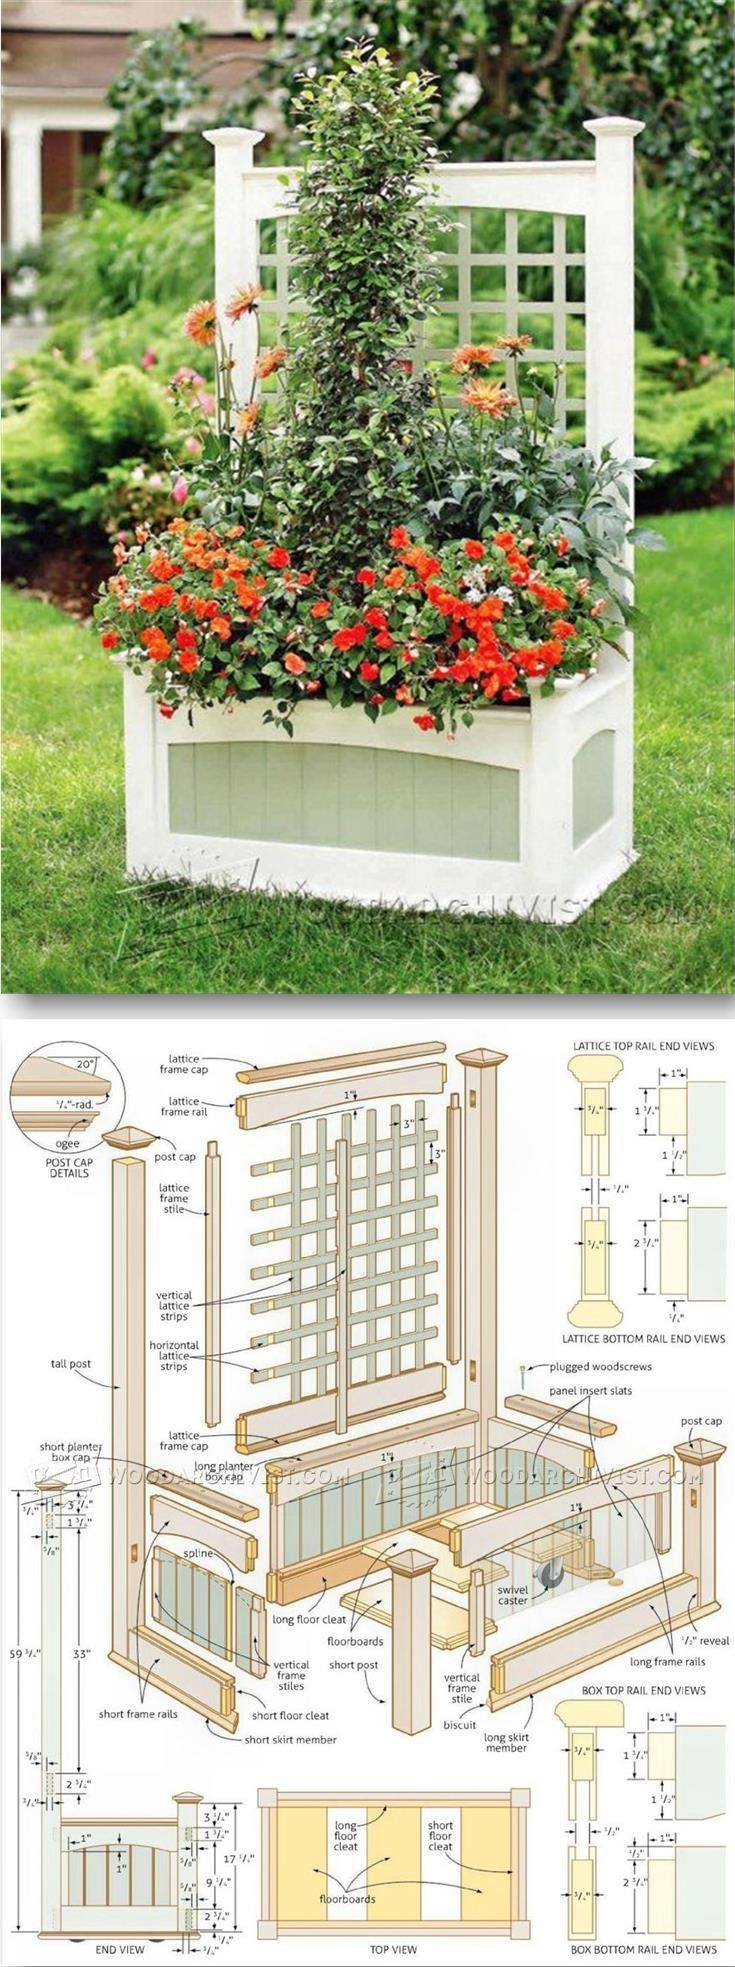 Flower Planter Plans - Outdoor Plans and Projects  | WoodArchivist.com